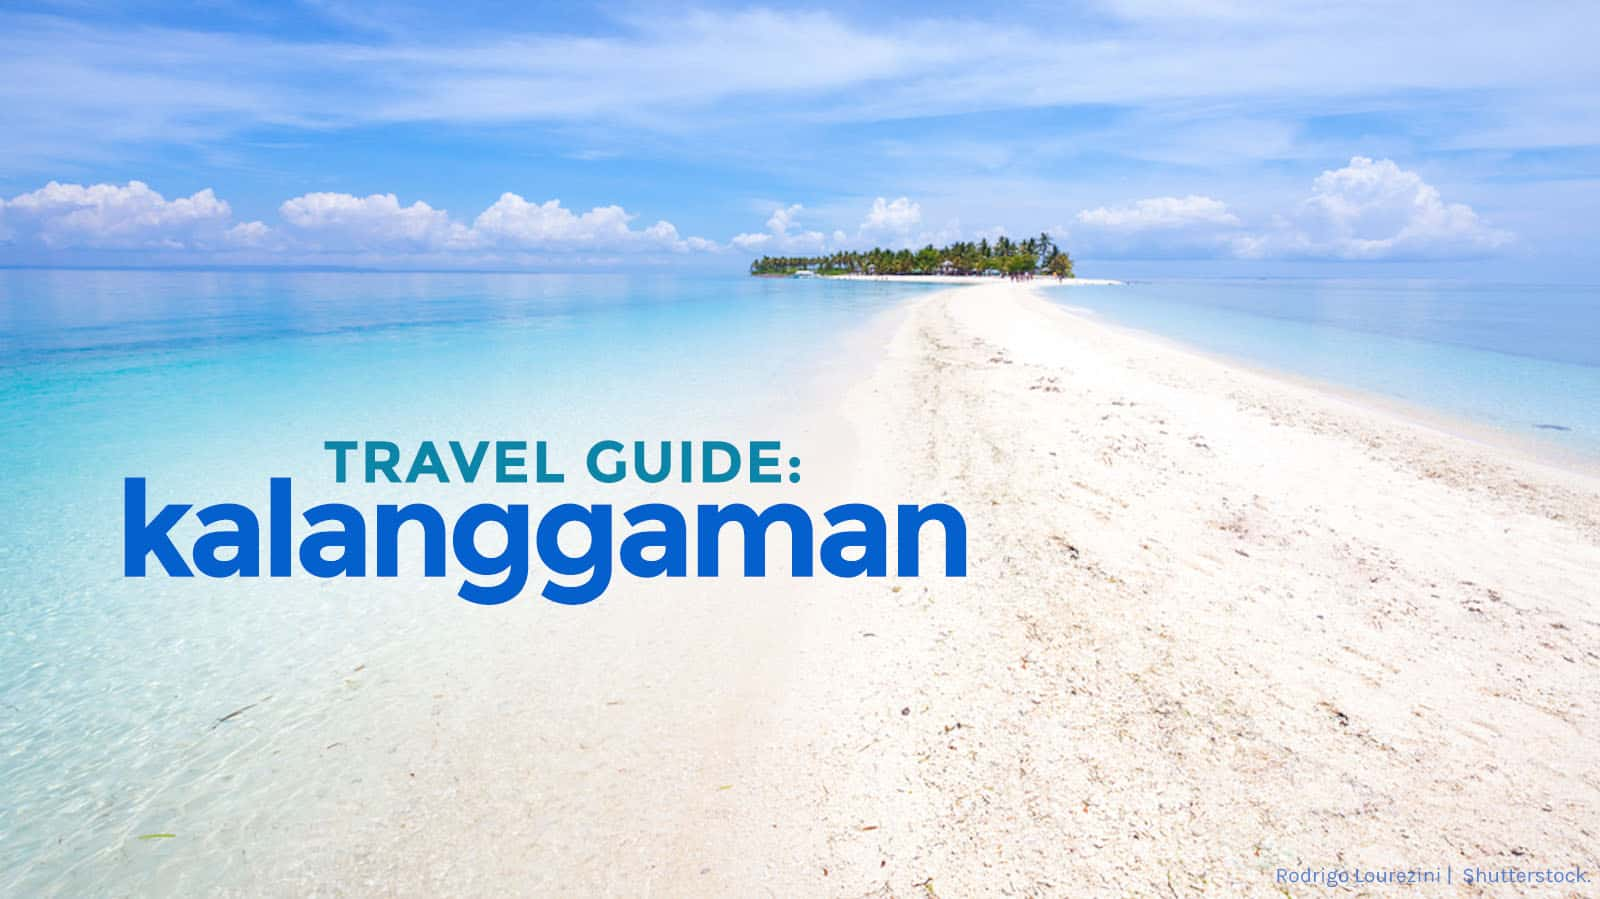 KALANGGAMAN ISLAND Travel Guide & Itinerary: How to Get There